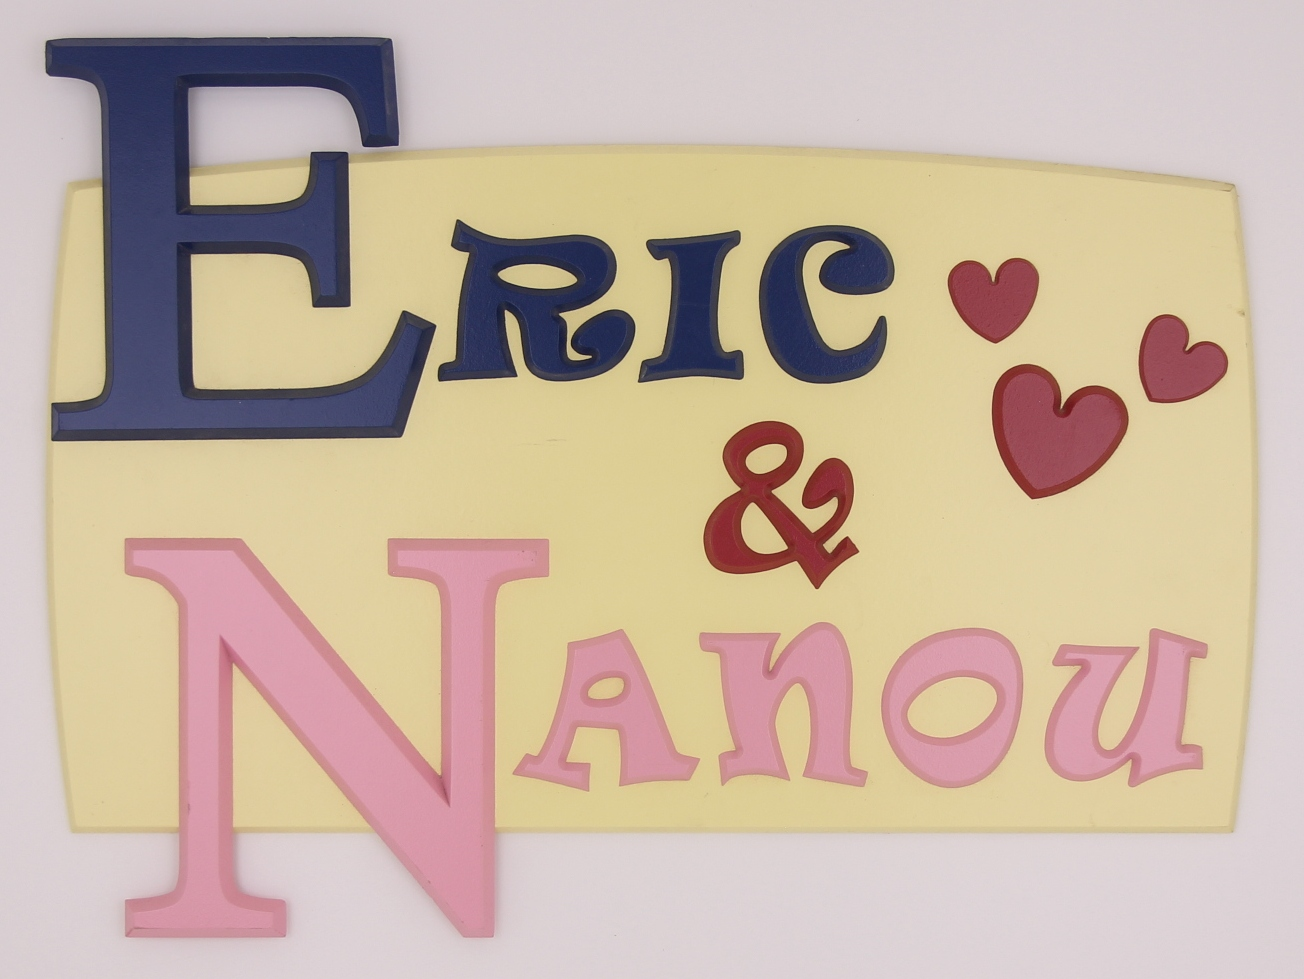 painted wooden name sign for Eric & Nanou